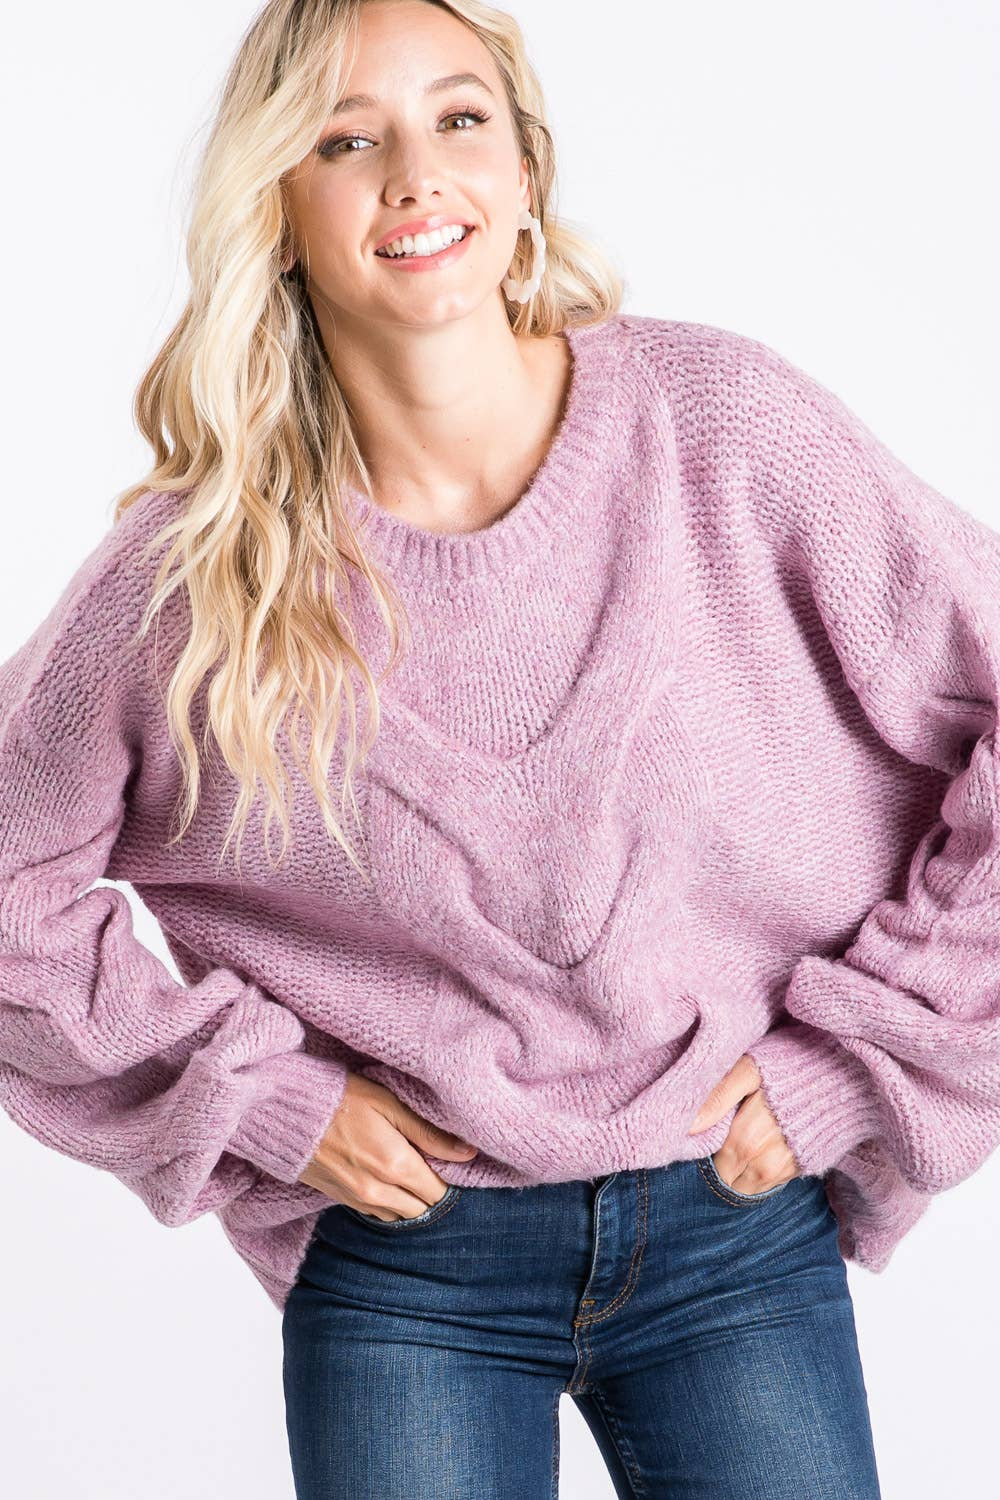 Lavender Fields Sweater-Sweaters-Max & Riley-Max & Riley